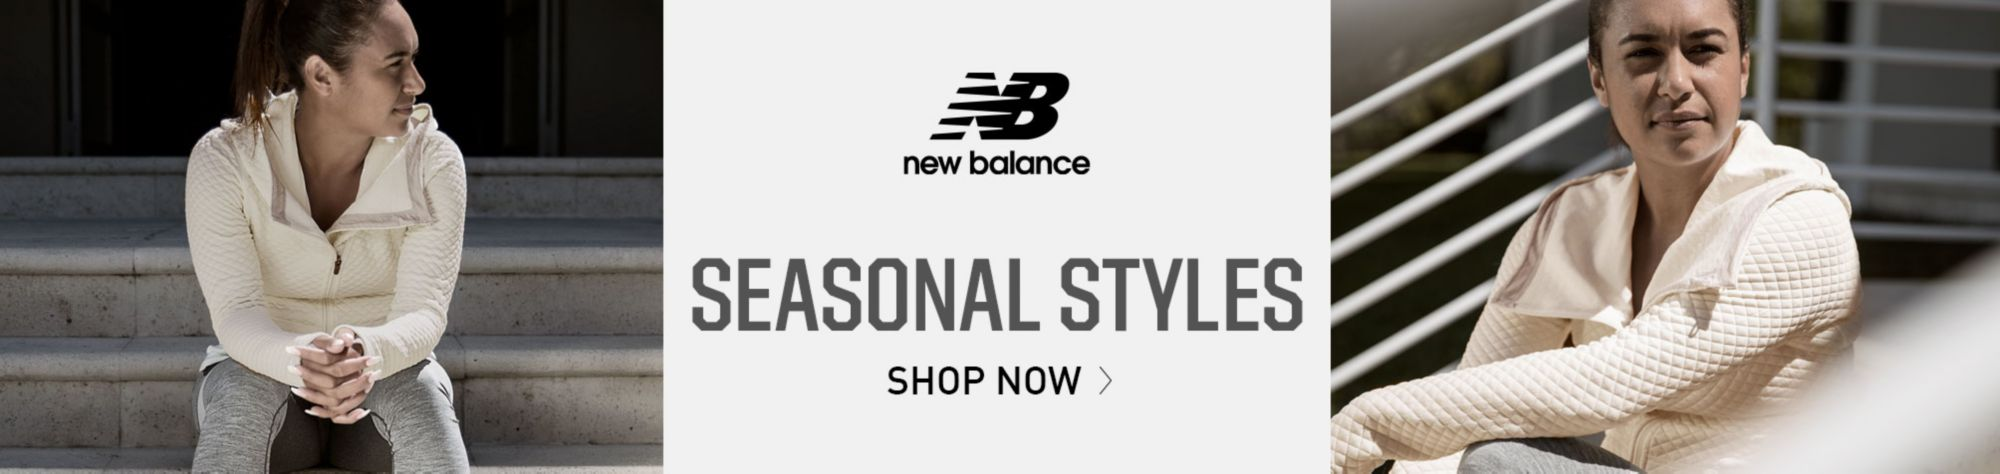 Women's New Balance Apparel & Footwear